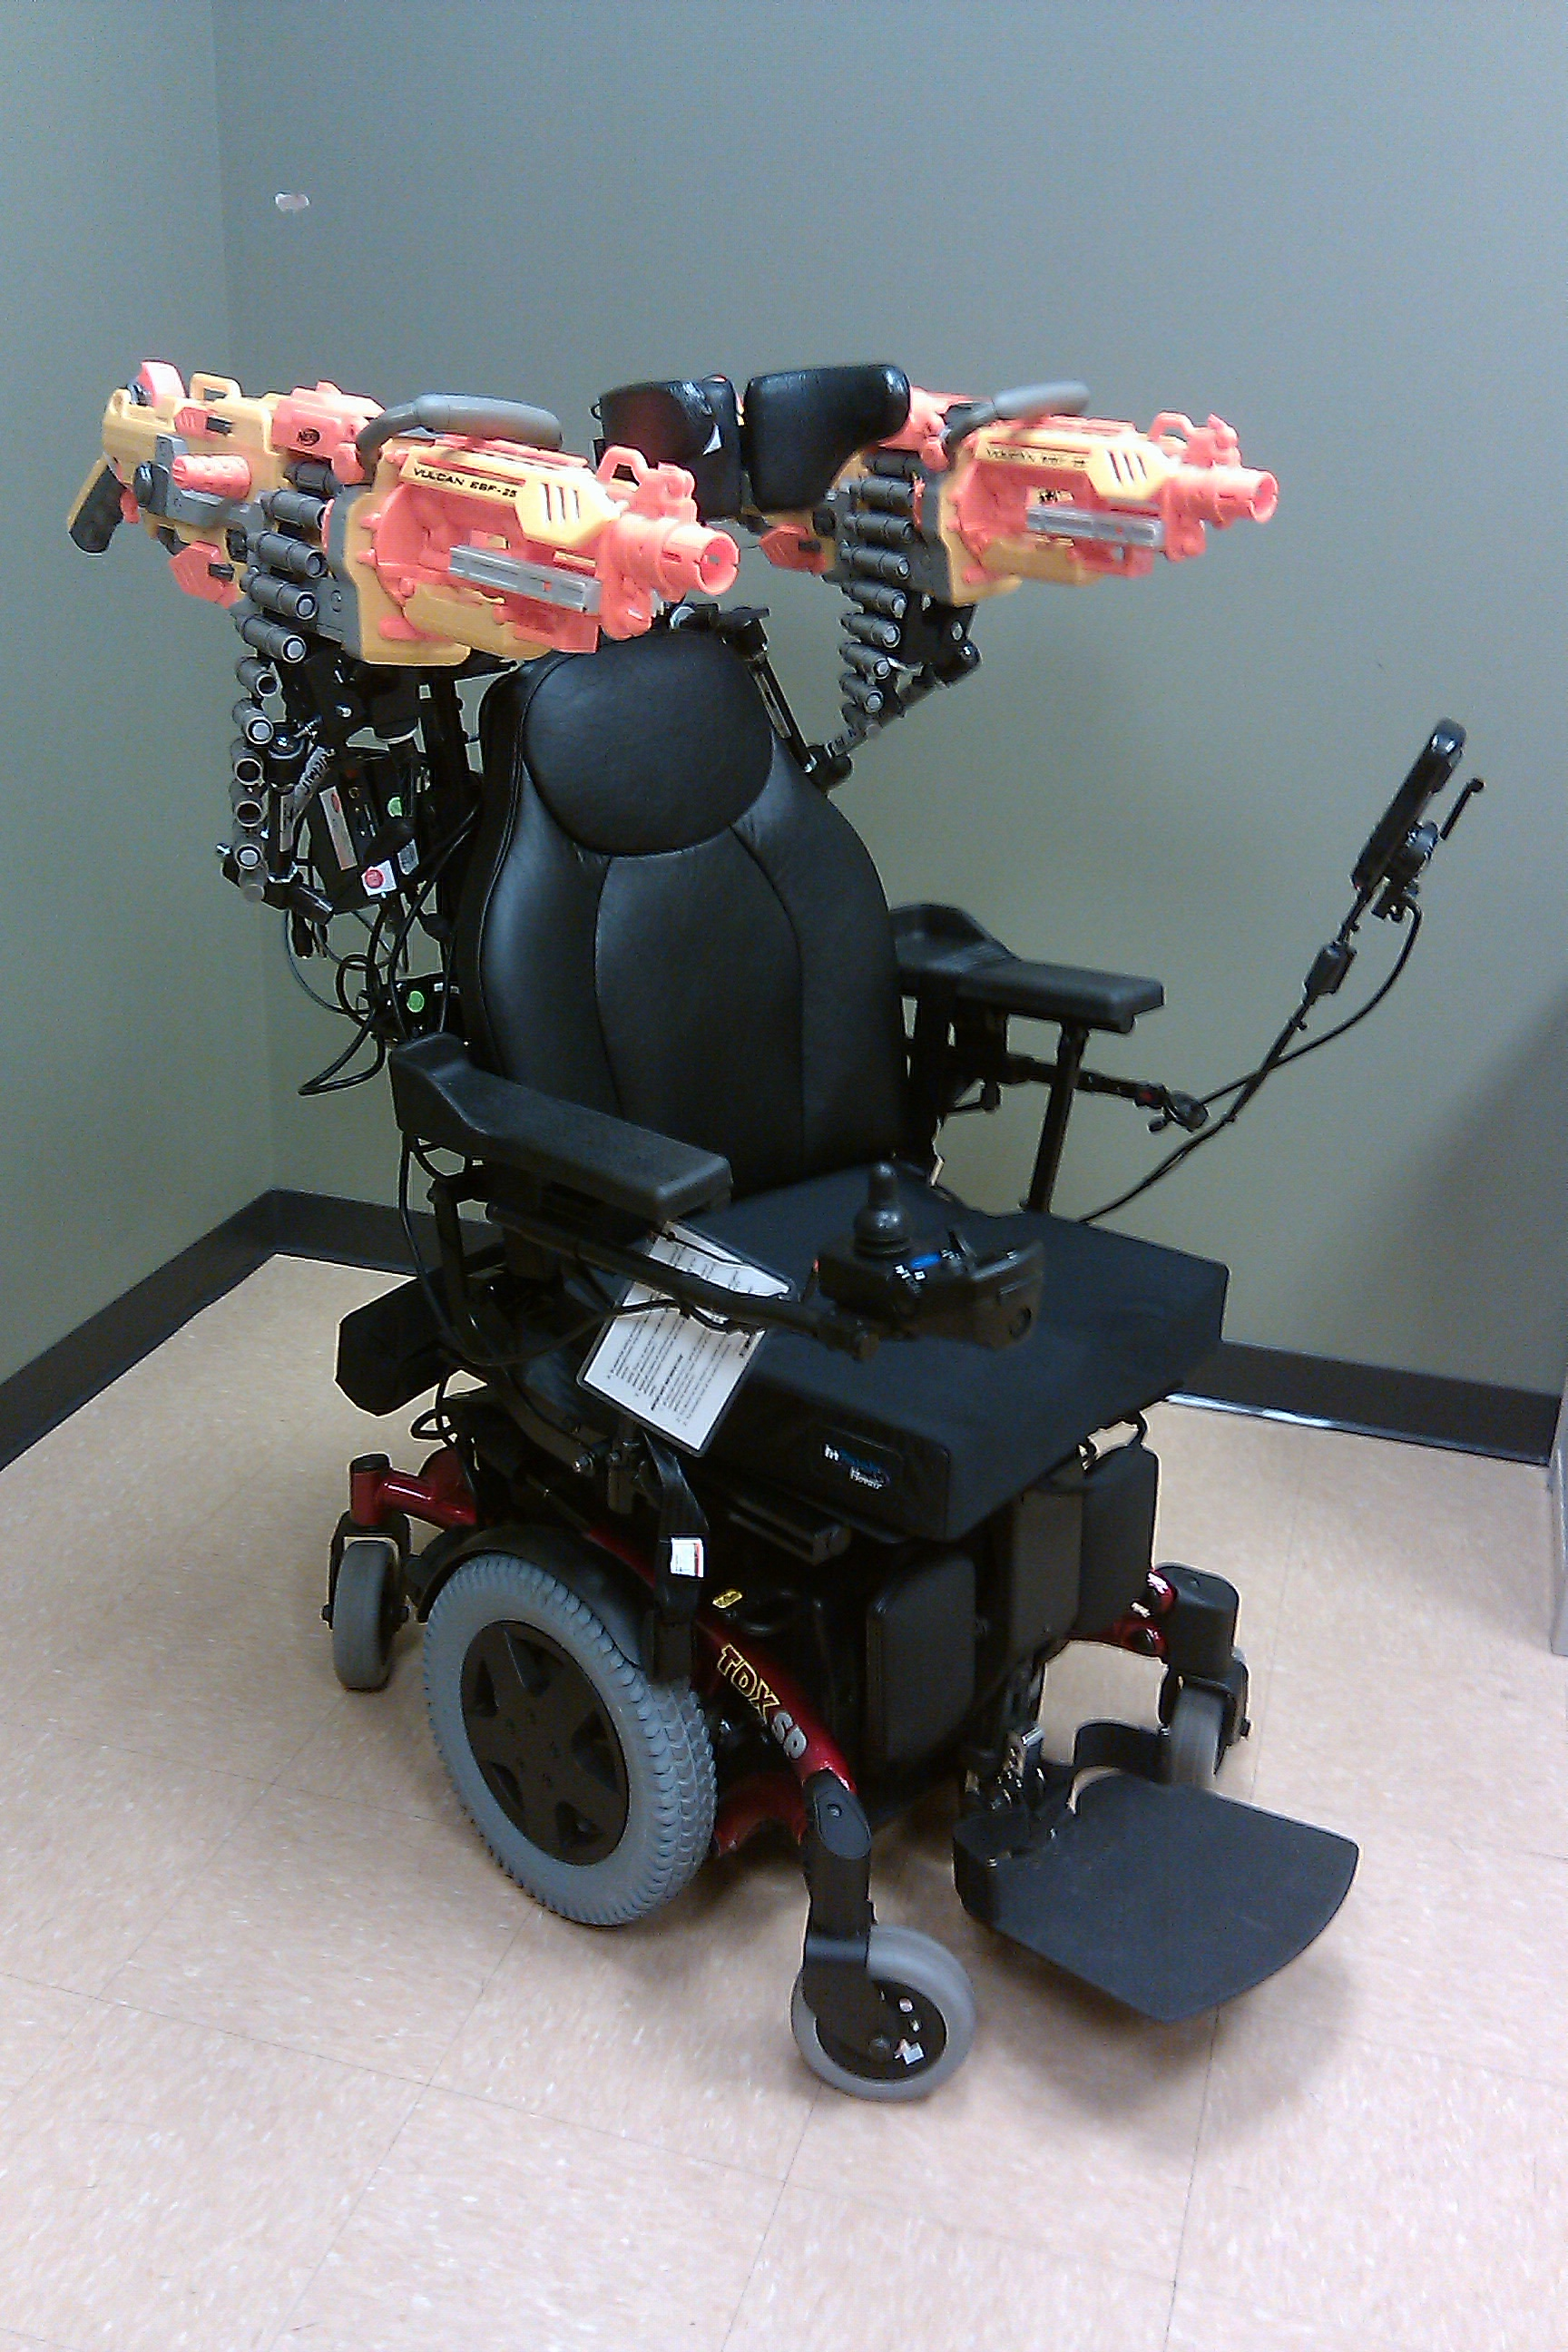 Wheelchair with Nerf machineguns mounted